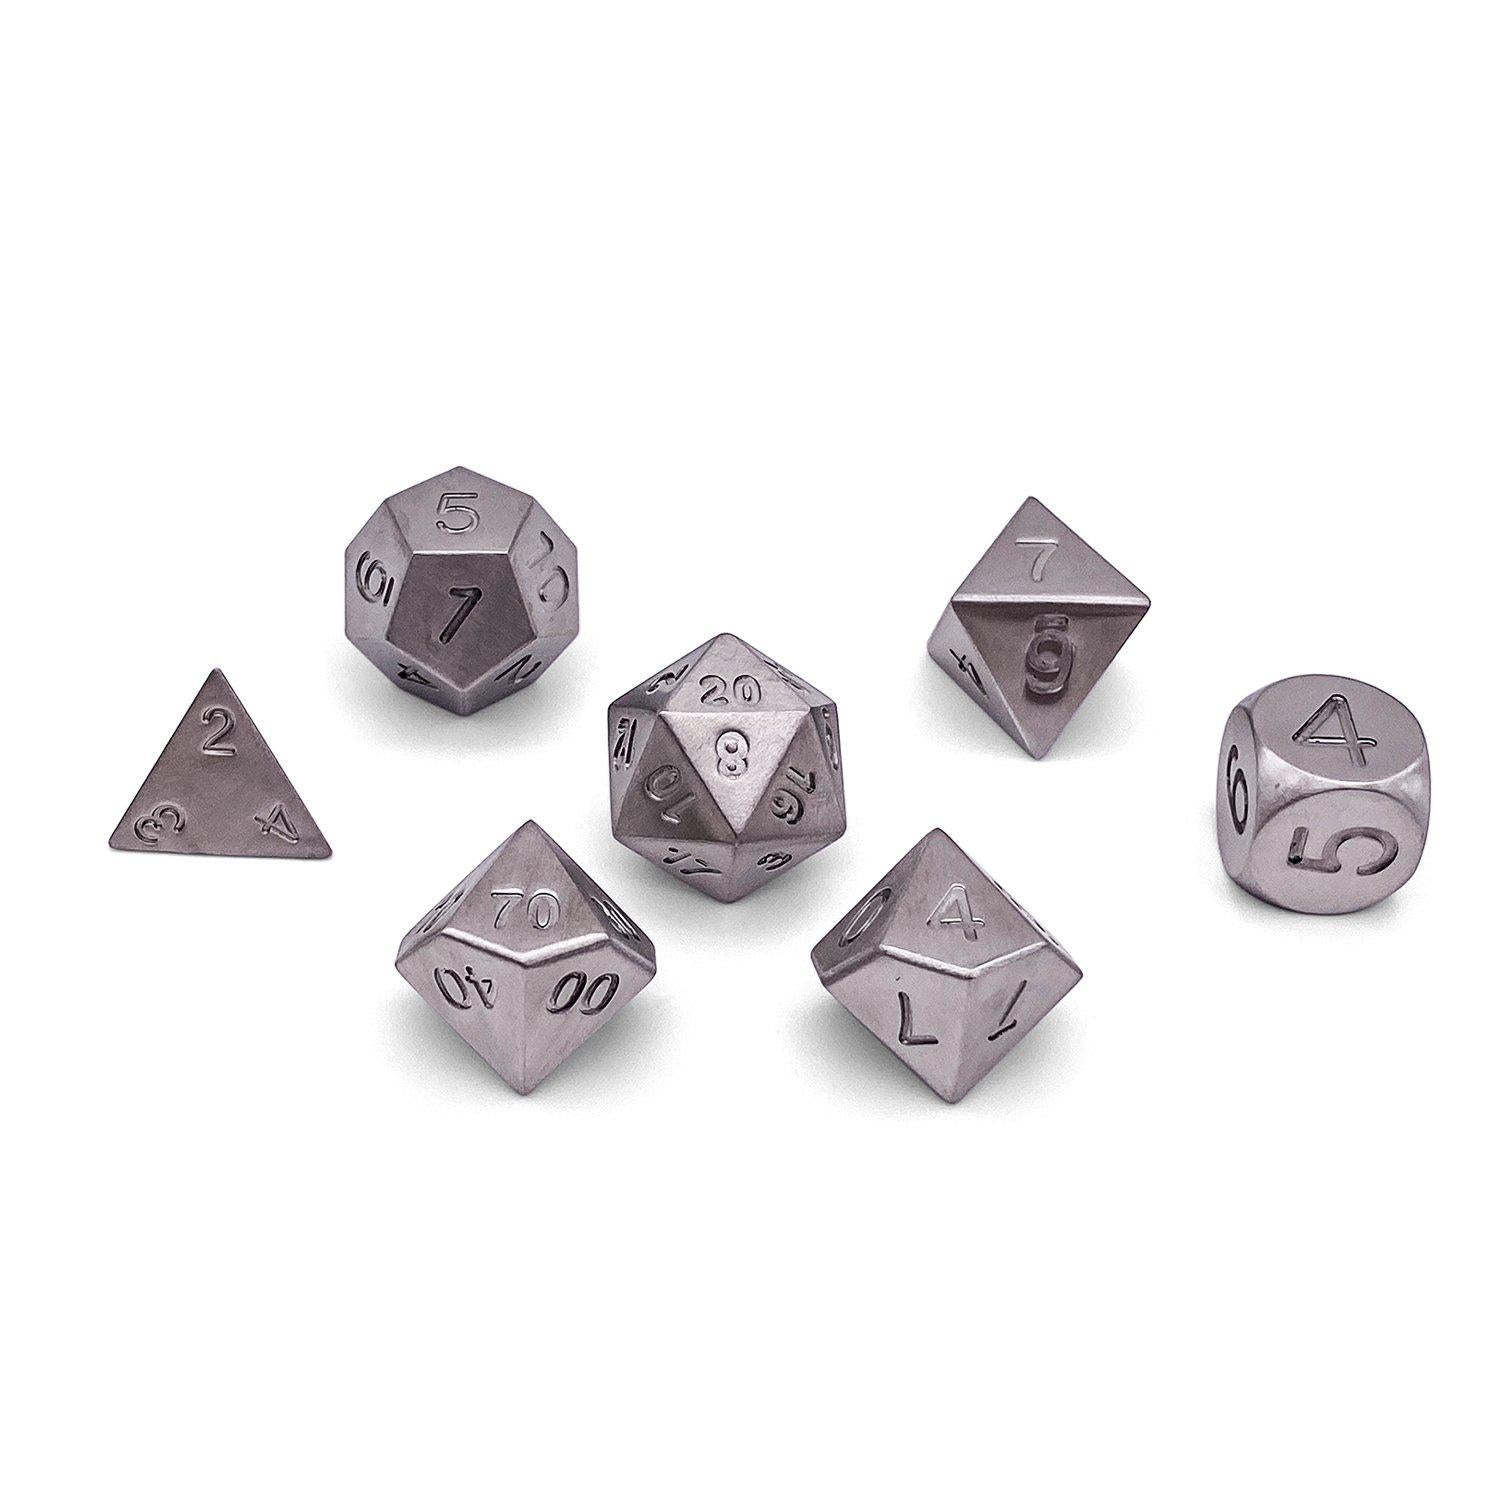 Set of 7 Stainless Steel RPG Dice by Norse Foundry Polyhedral Dice Set